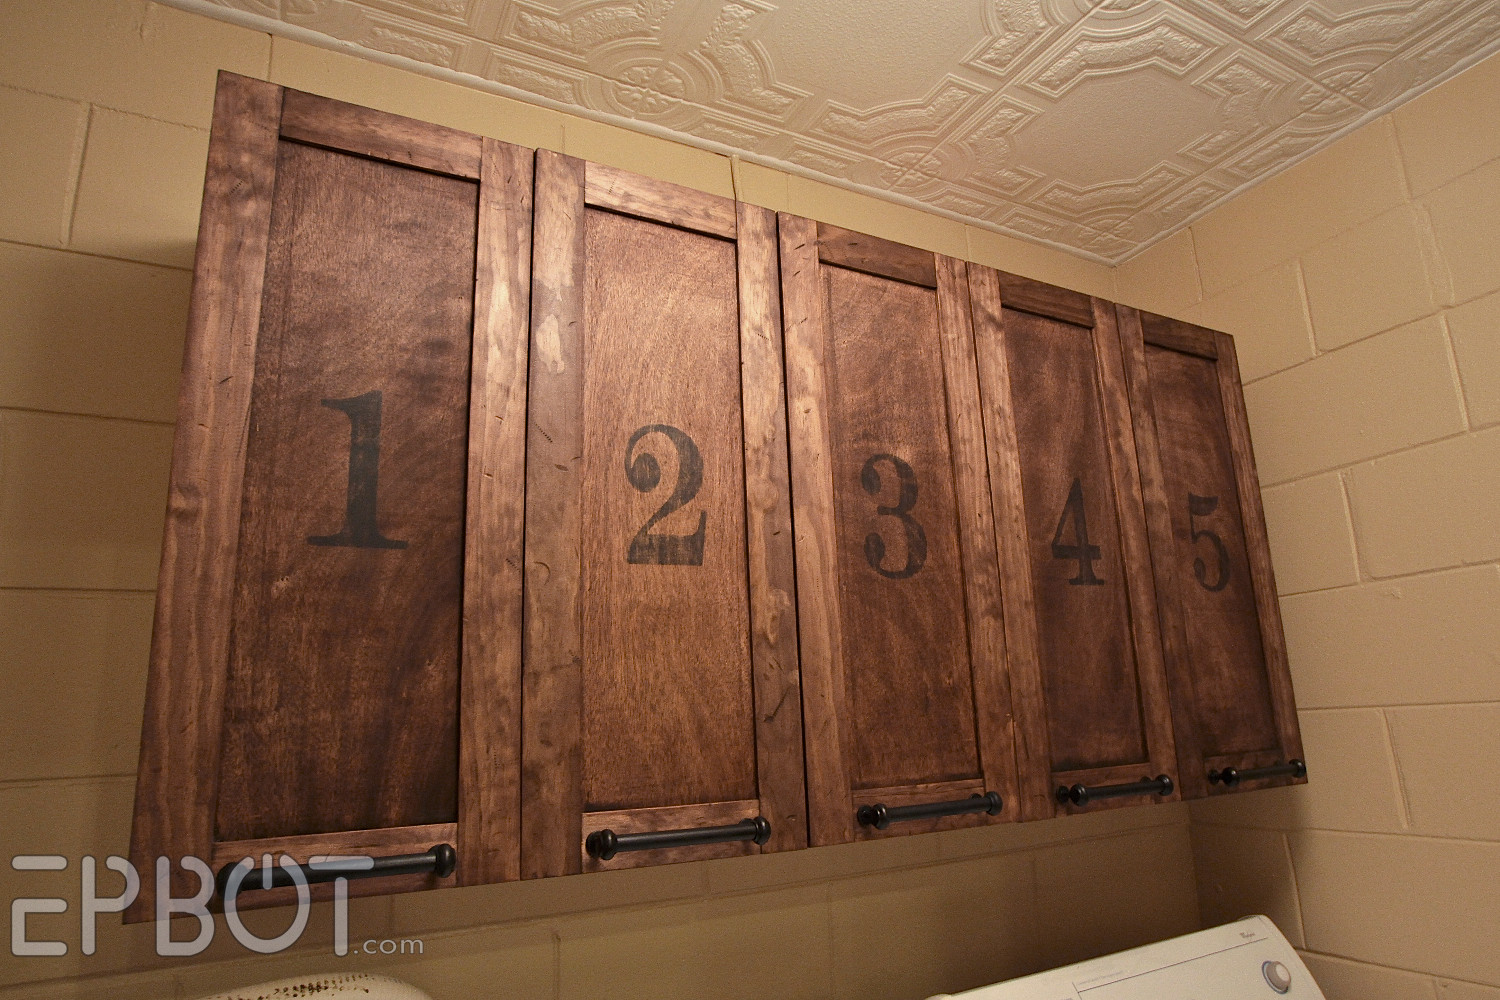 Best ideas about Rustic Cabinets DIY . Save or Pin EPBOT DIY Vintage Rustic Cabinet Doors Now.